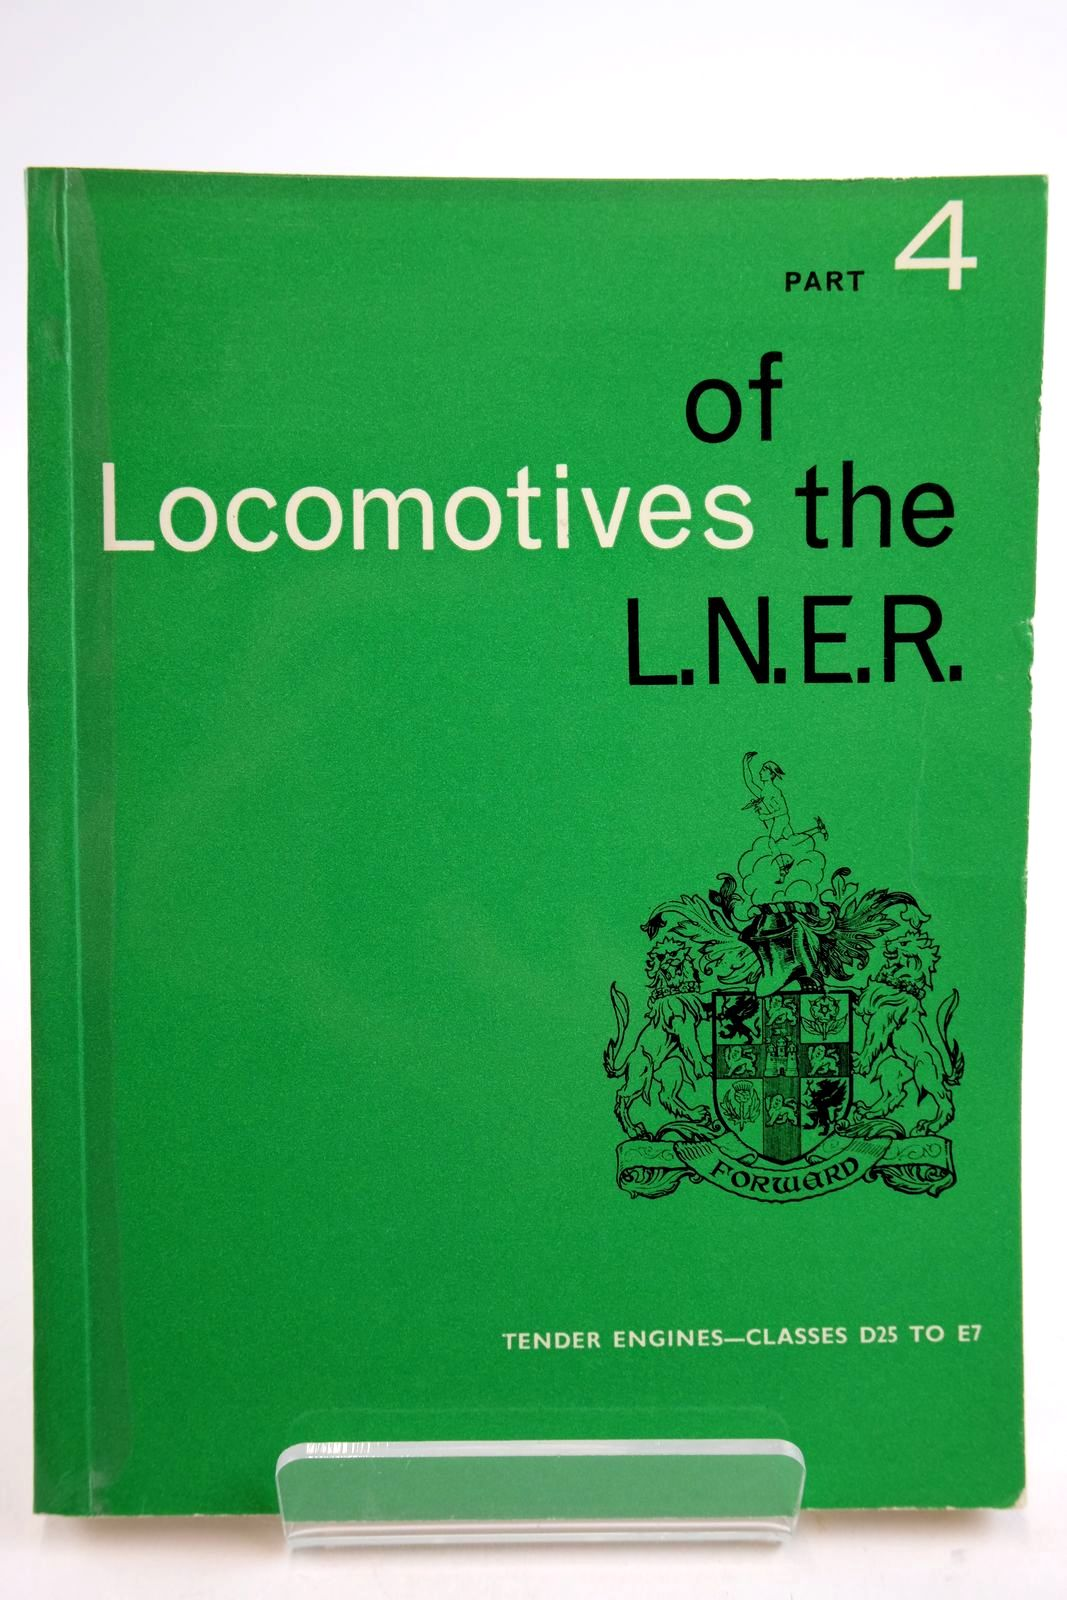 Photo of LOCOMOTIVES OF THE L.N.E.R. PART 4 published by The Railway Correspondence And Travel Society (STOCK CODE: 2133318)  for sale by Stella & Rose's Books